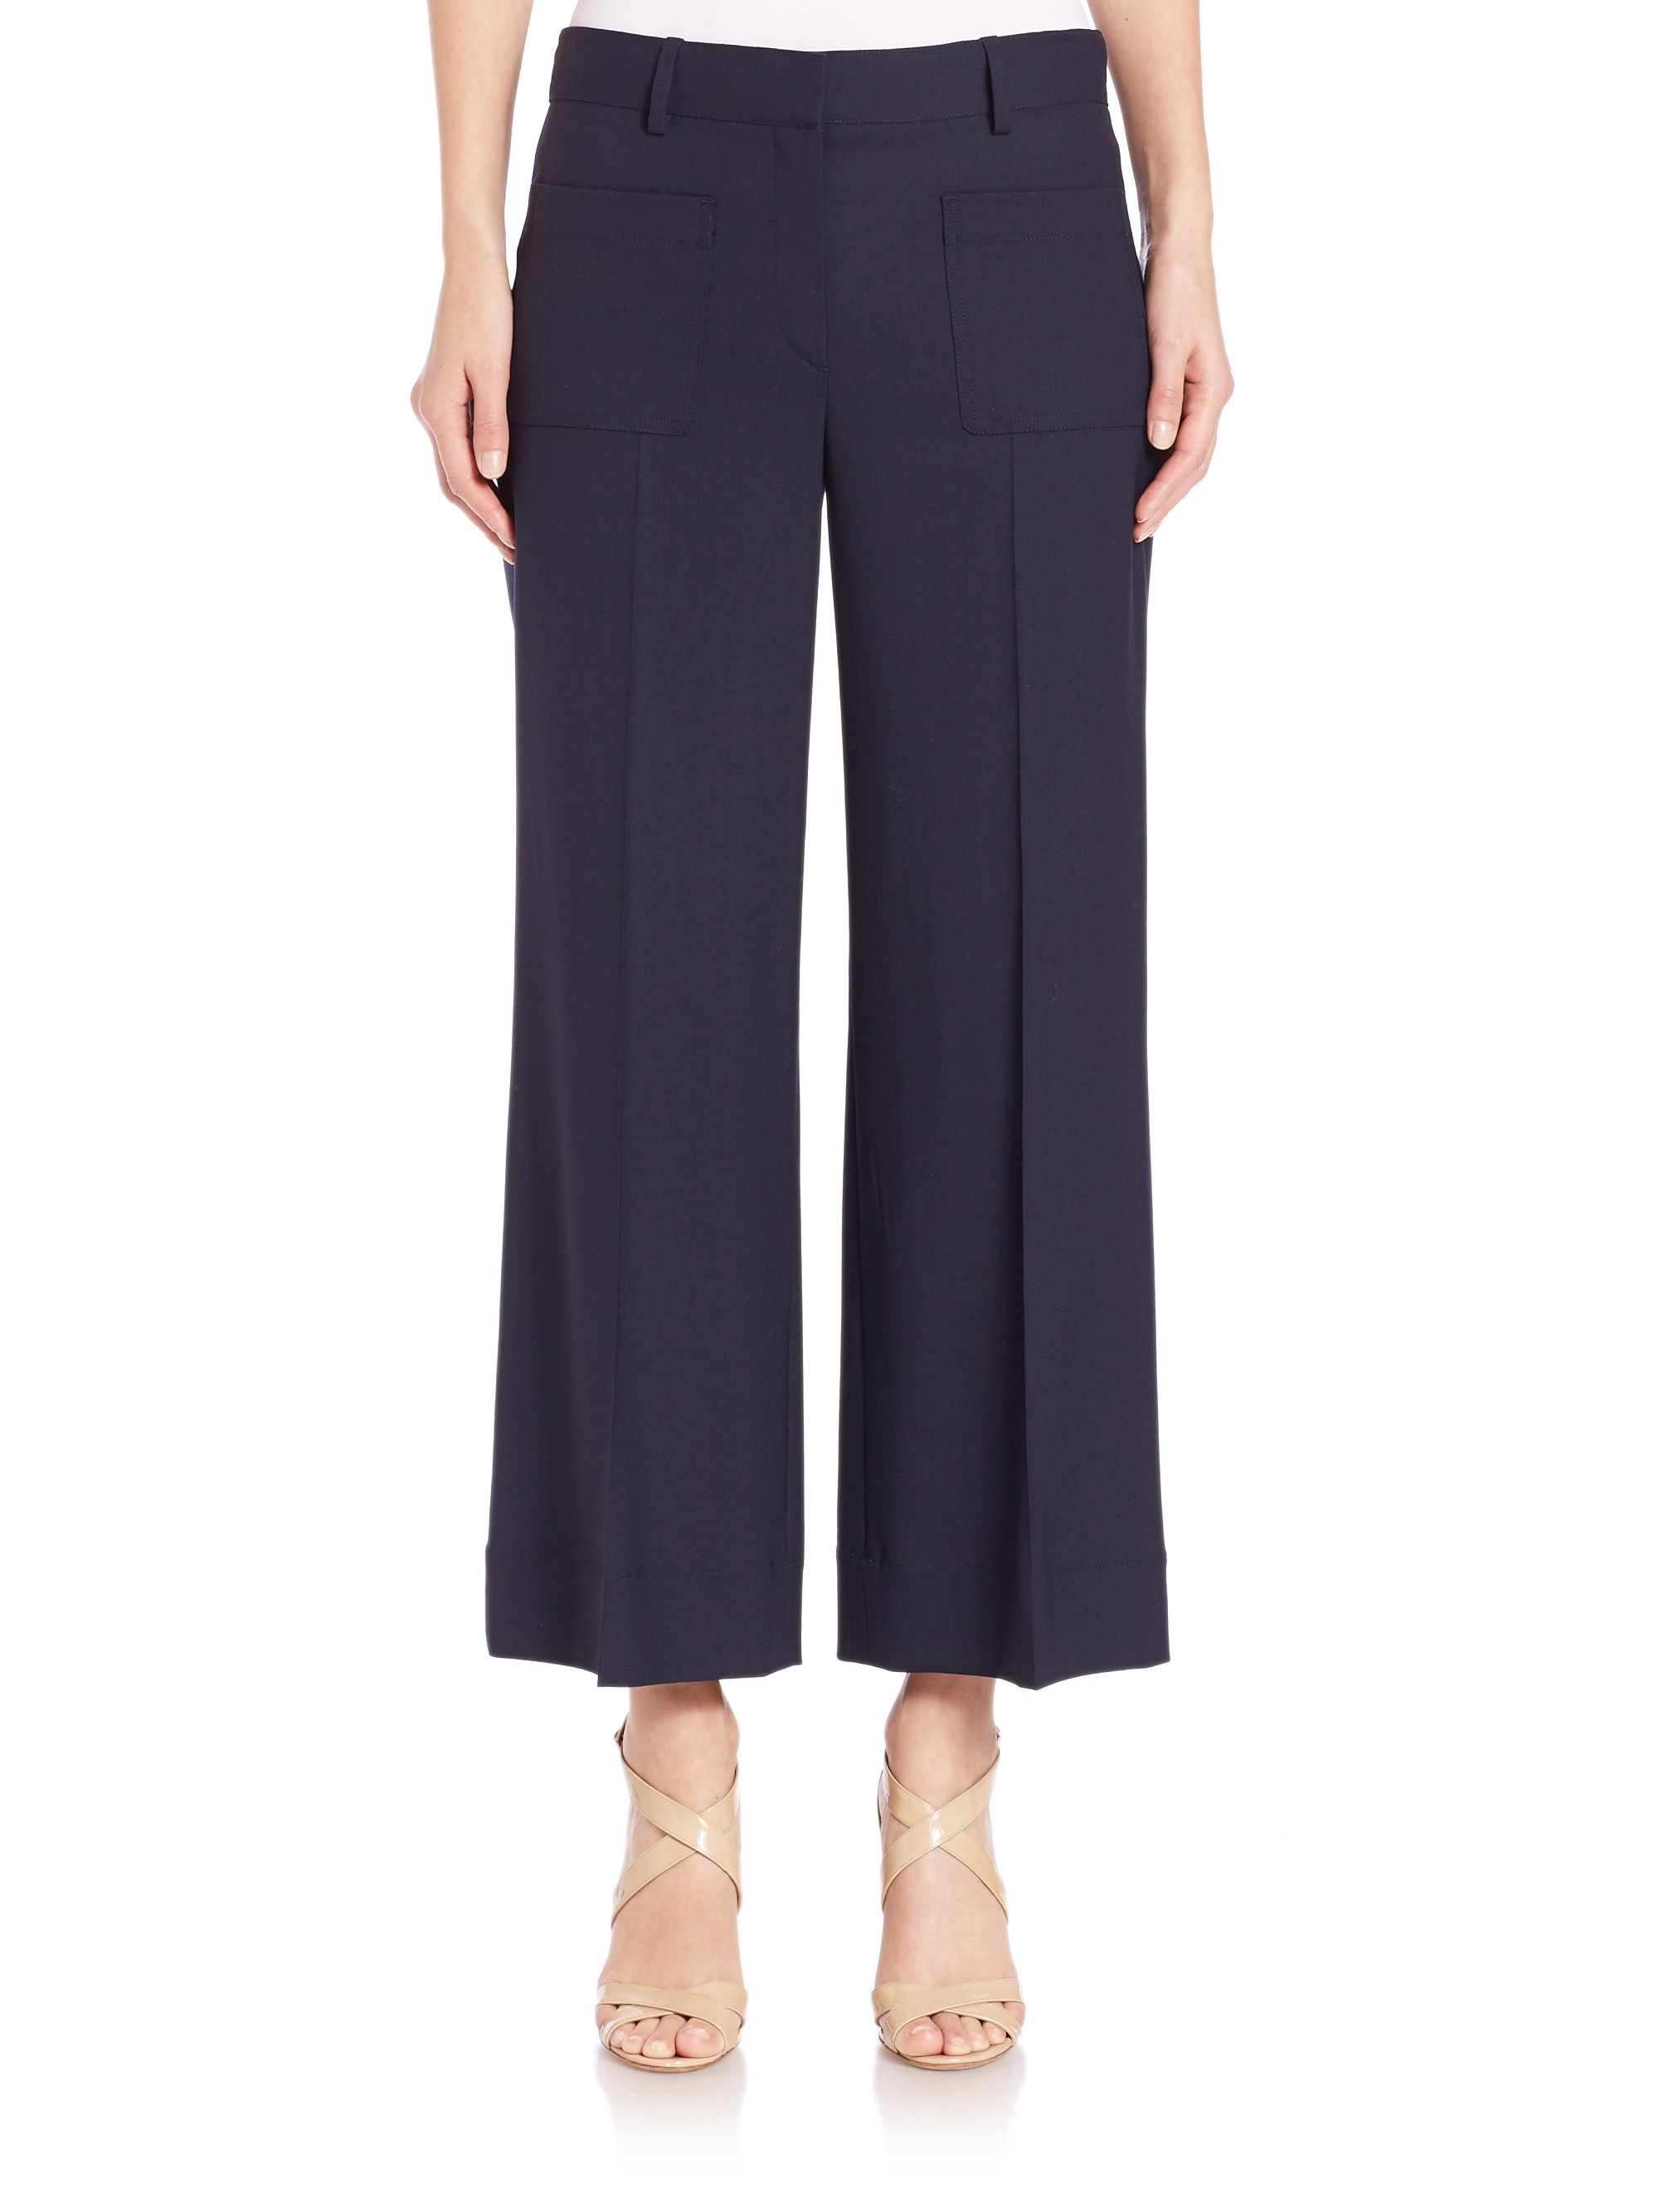 Cropped Pants Dare to bare this season with the Farfetch edit of cropped trousers. Whether you are looking for Capri pants, pedal pushers or clam-diggers – you'll find an .